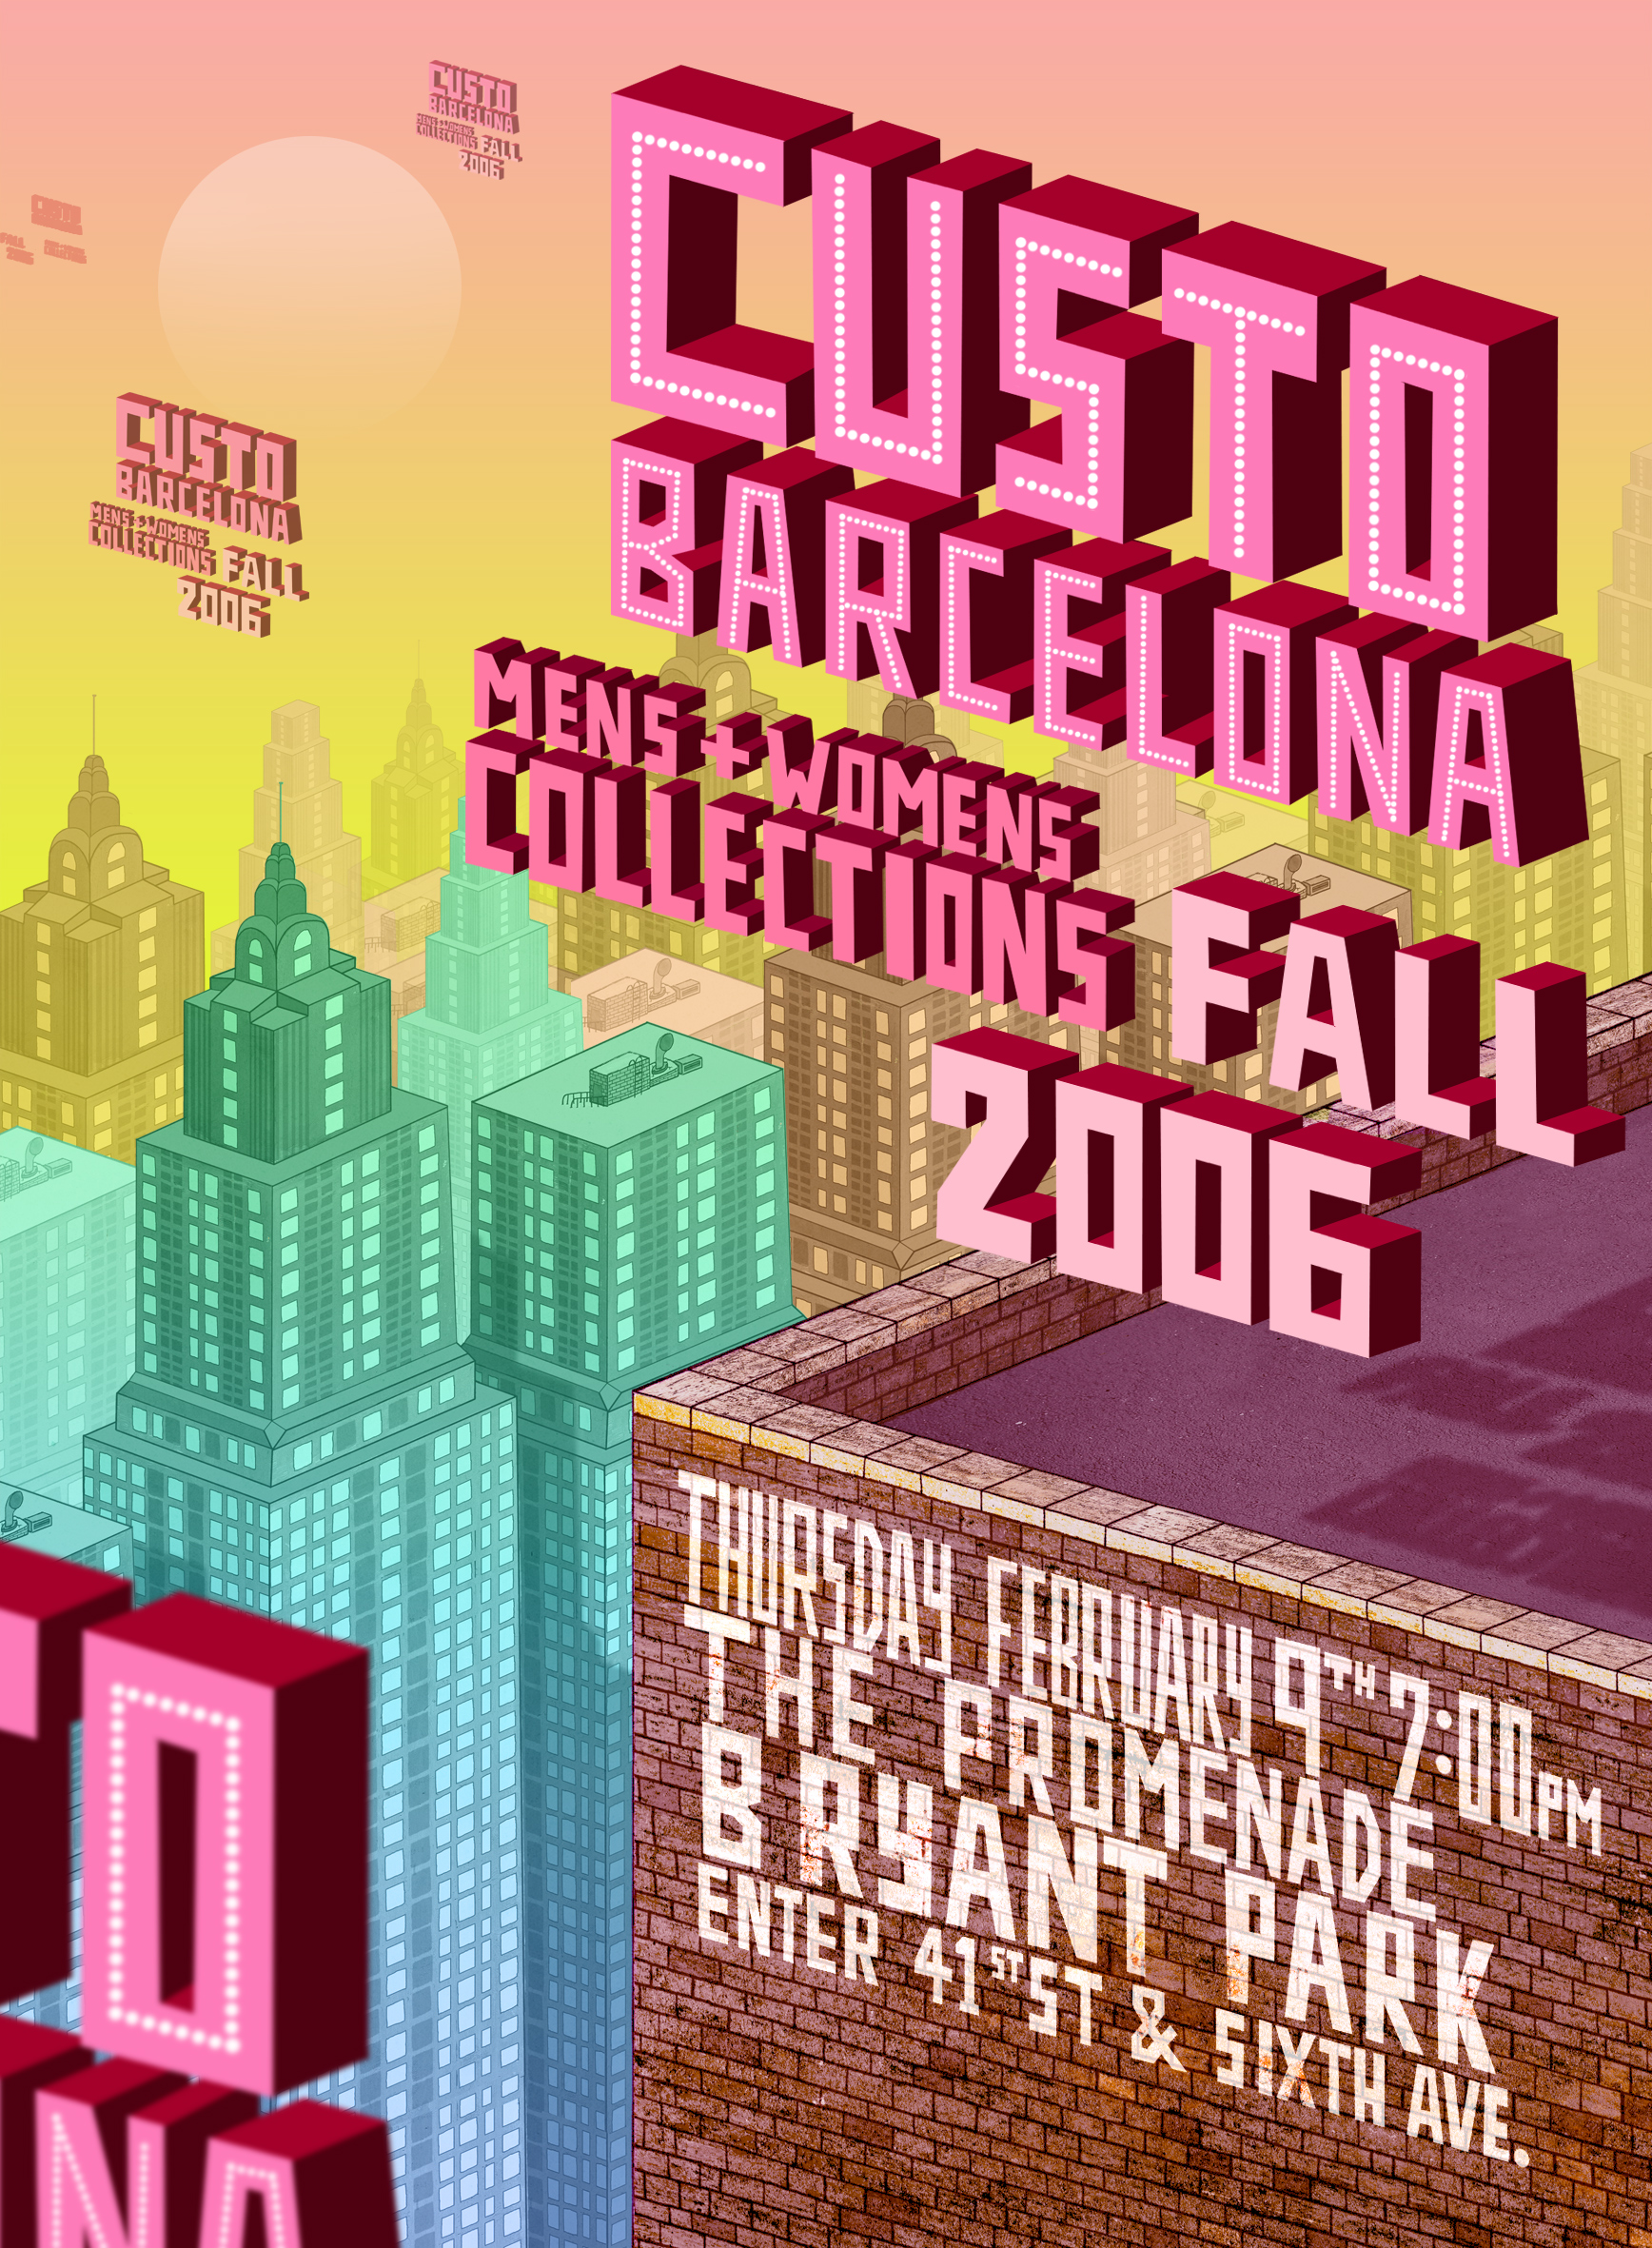 custon barcelona invite.jpg